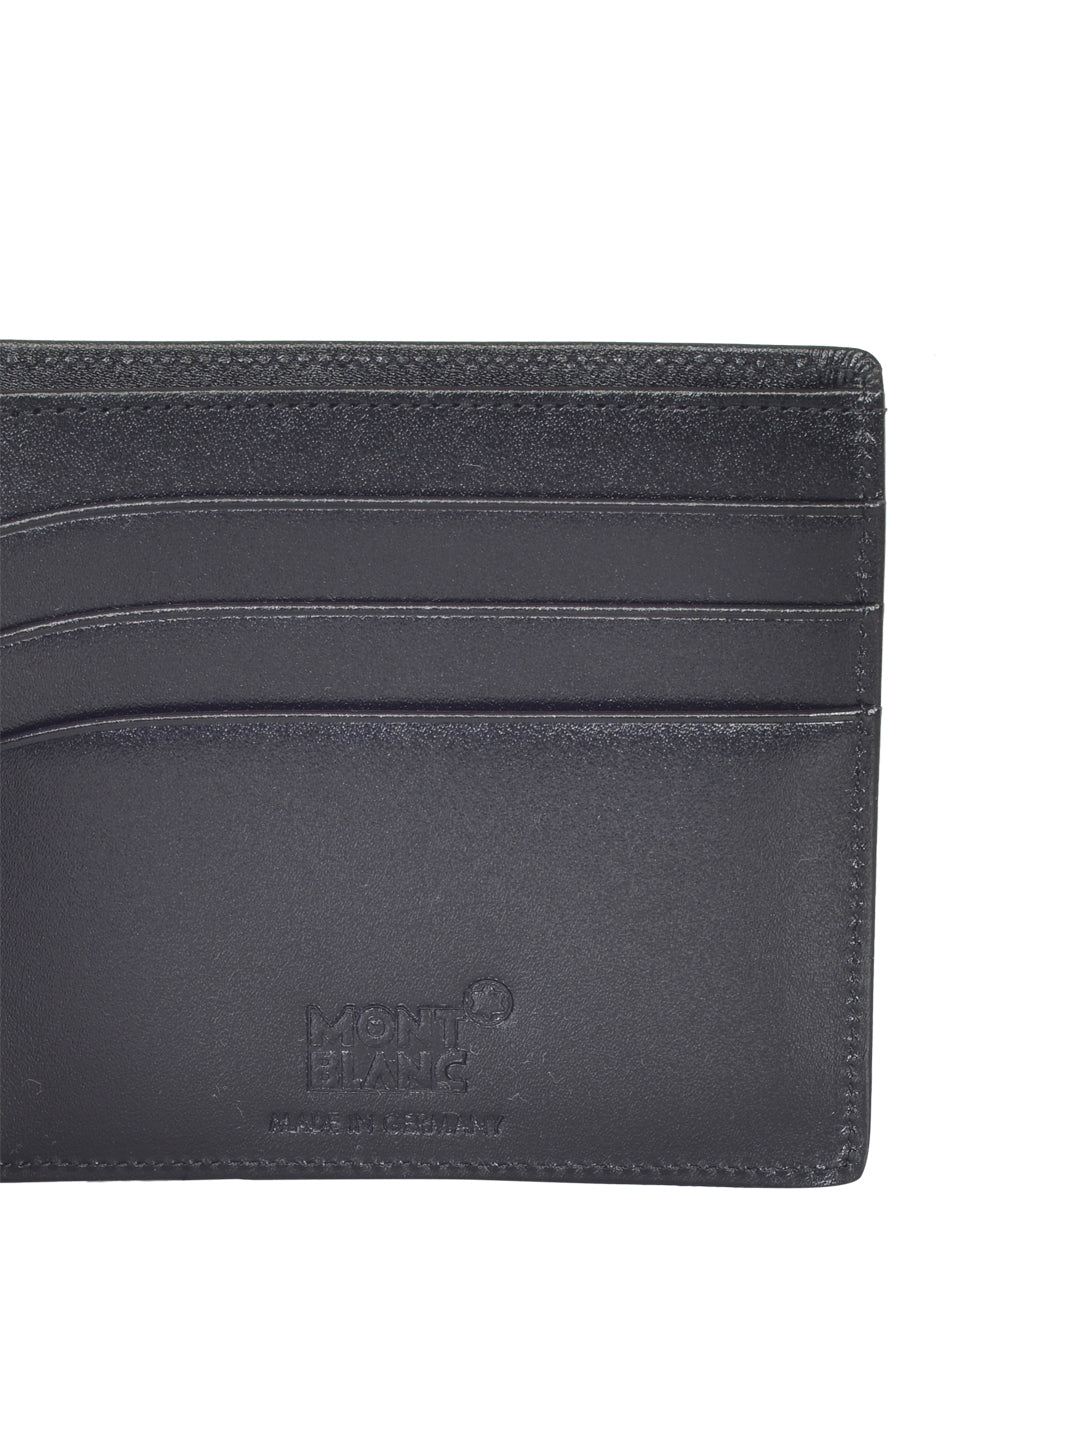 MONT BLANC MEN'S Meisterstück 8CC LEATHER WALLET